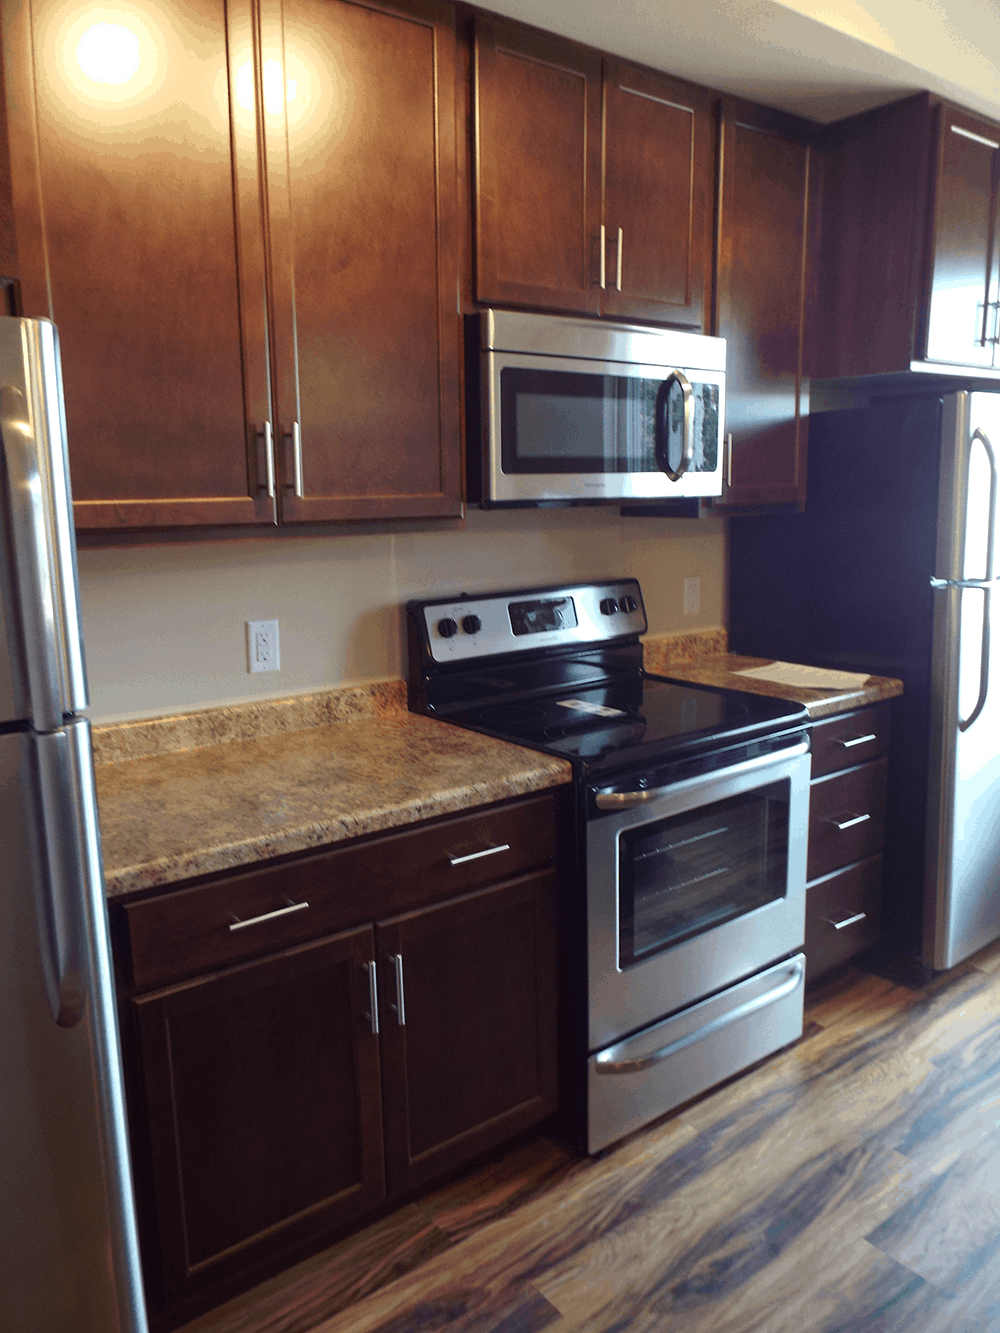 Townhomes kitchen area